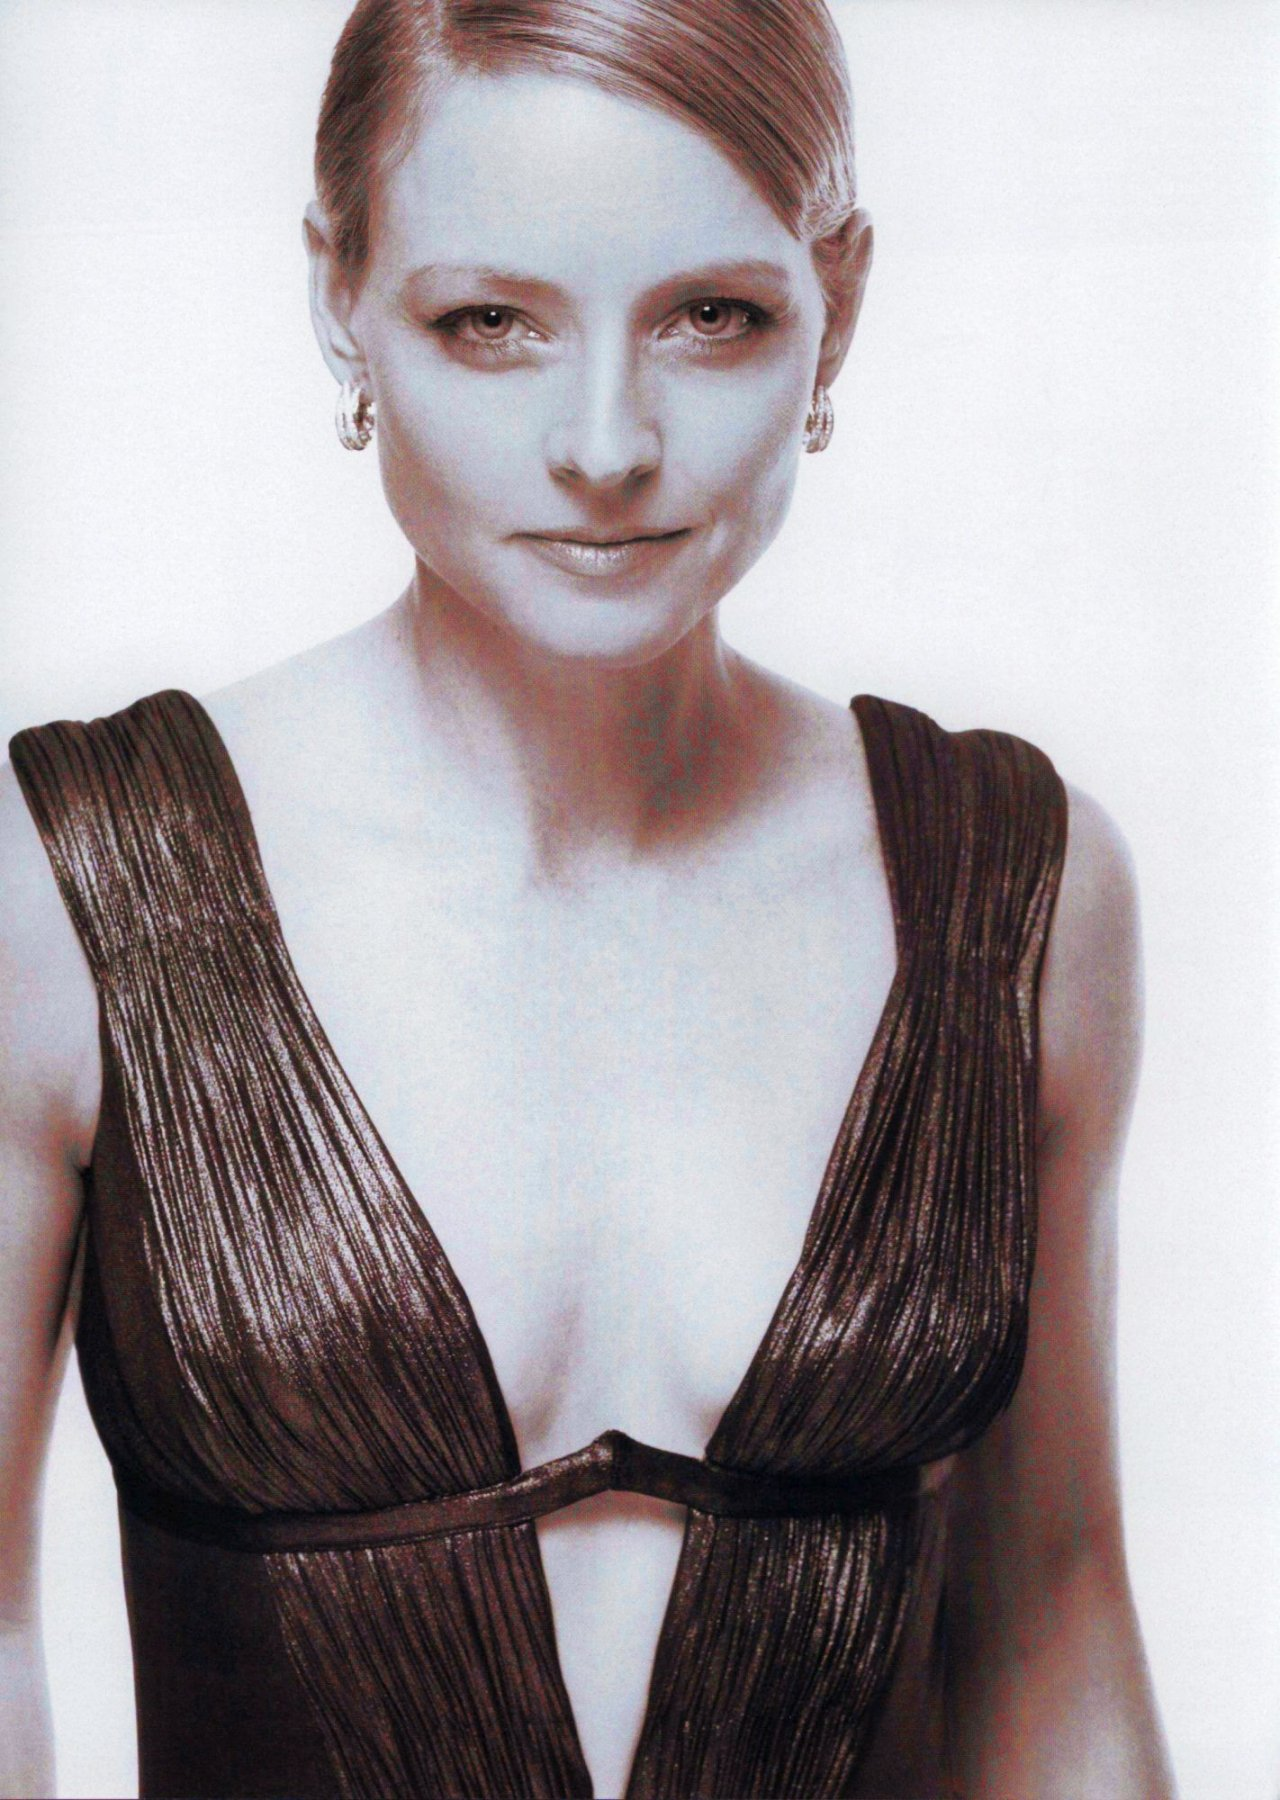 Jodie Foster - Images